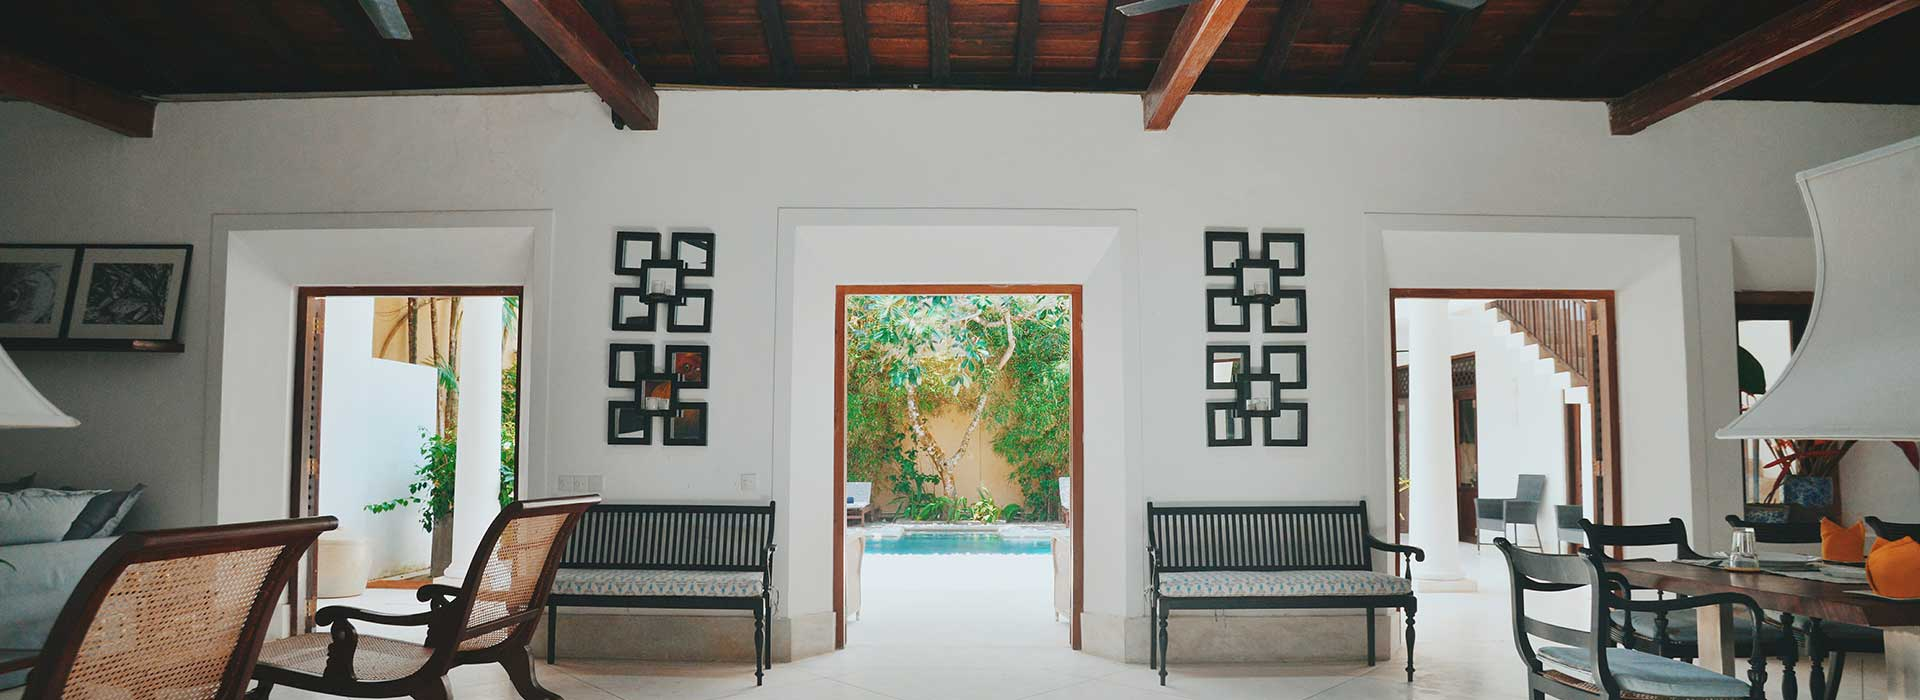 Interior of 32 Middle Street Luxury Boutique Hotel in Galle Fort